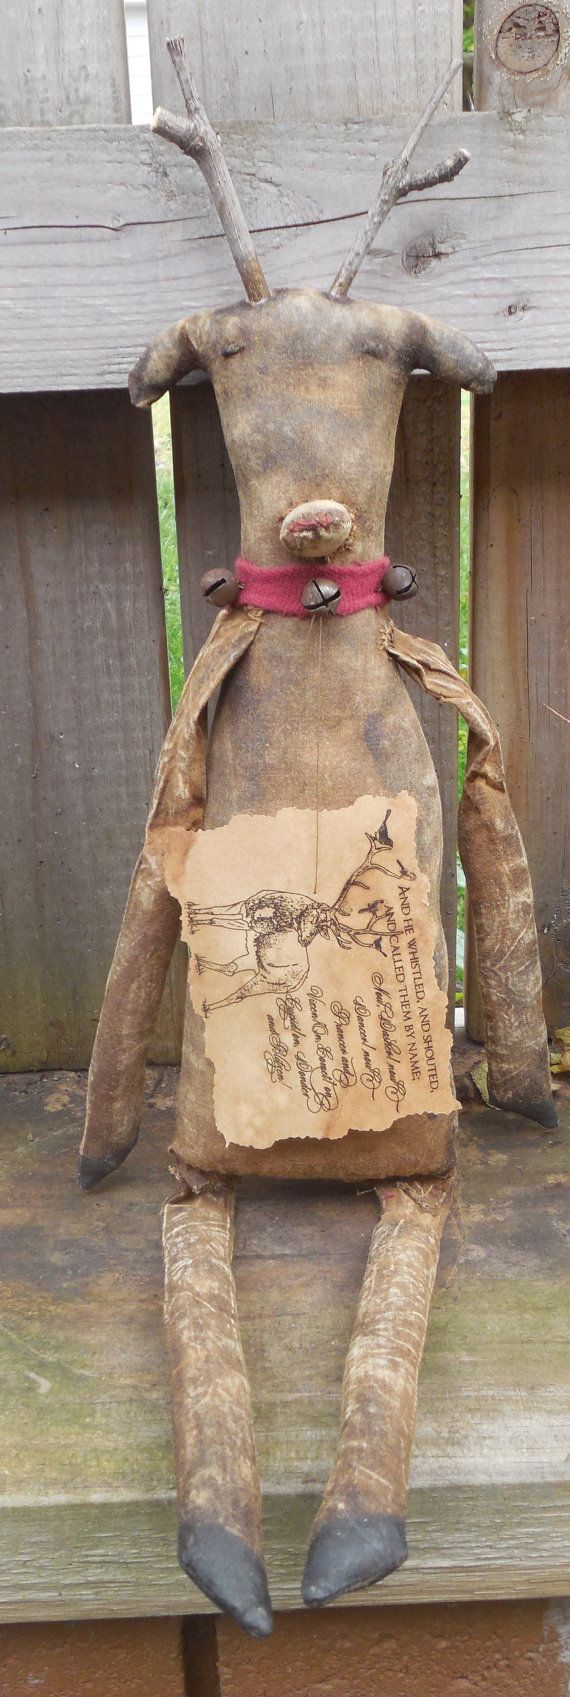 1 Primitive Christmas Rudolph Reindeer animal by CrowsRoostDolls